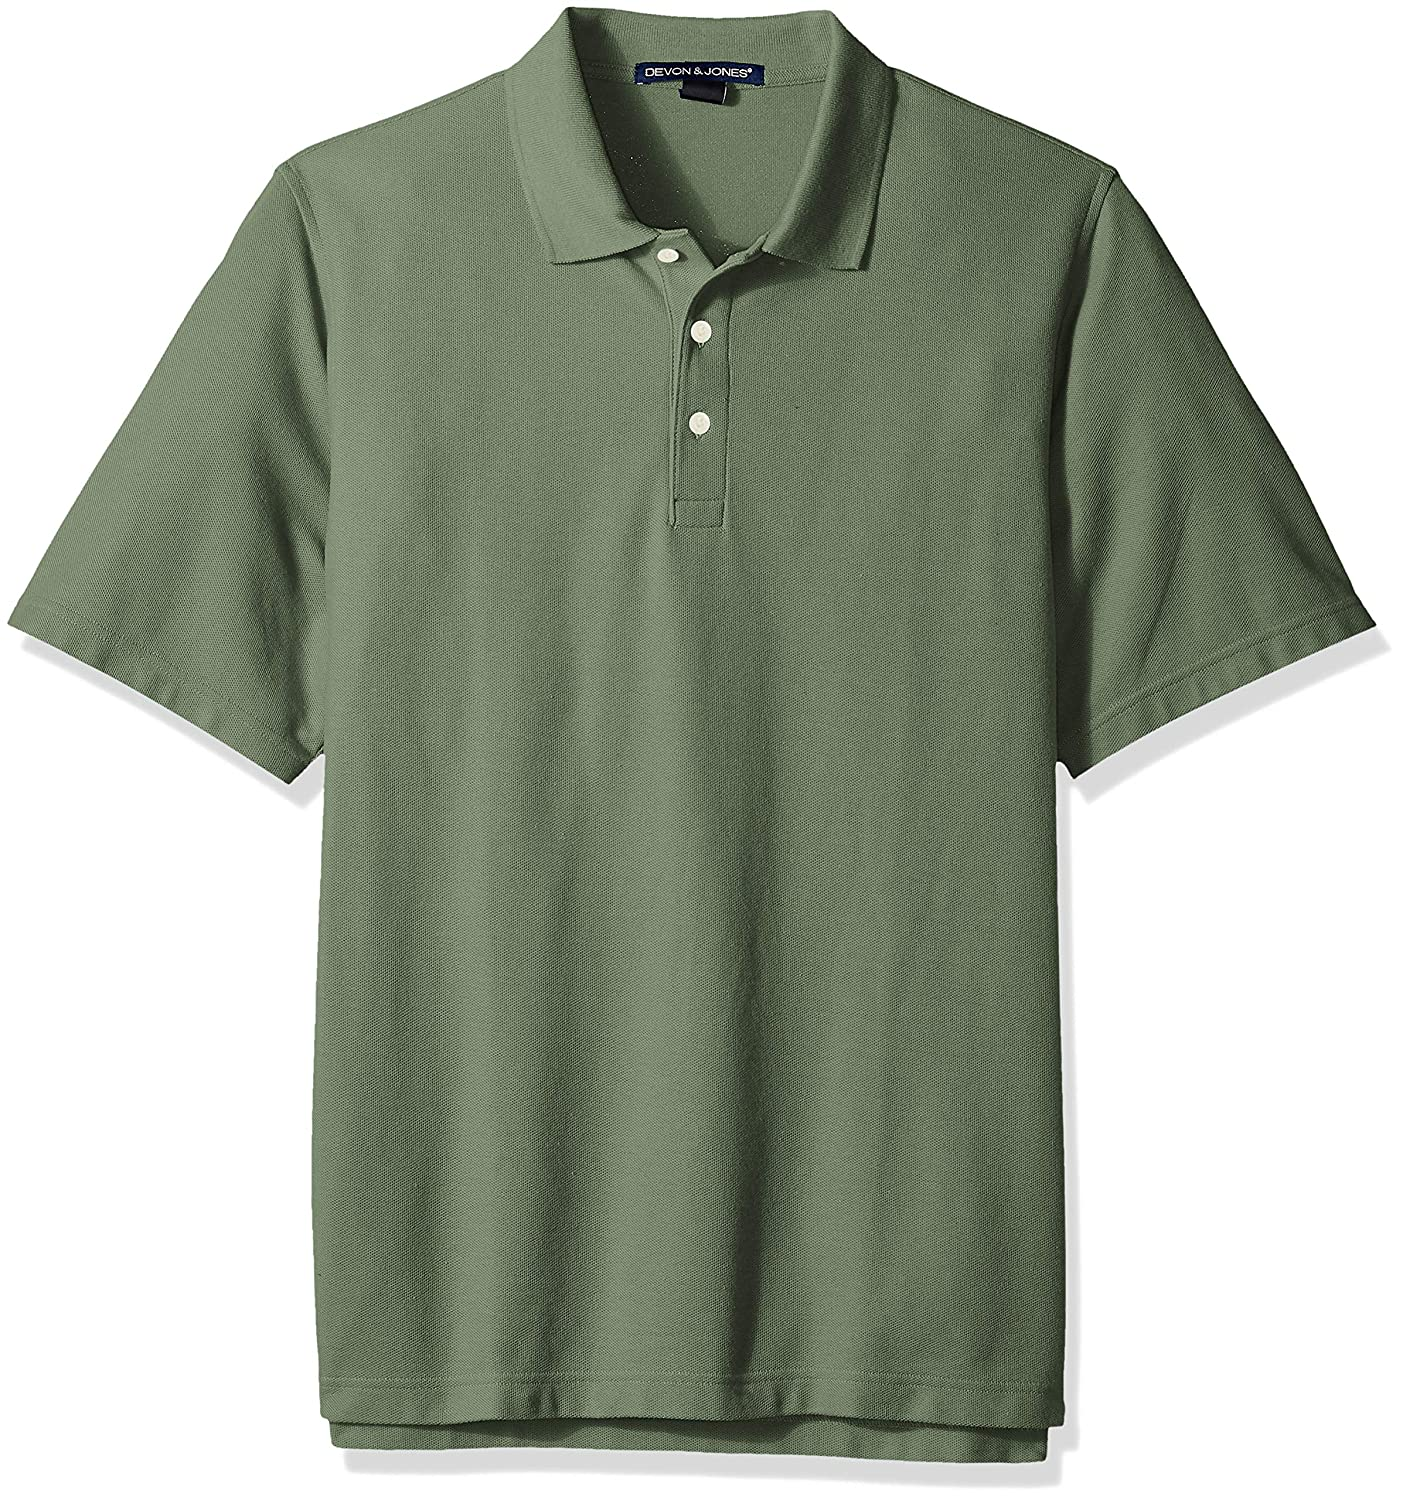 D /& Jones Mens Crown Collection Solid Stretch Twill